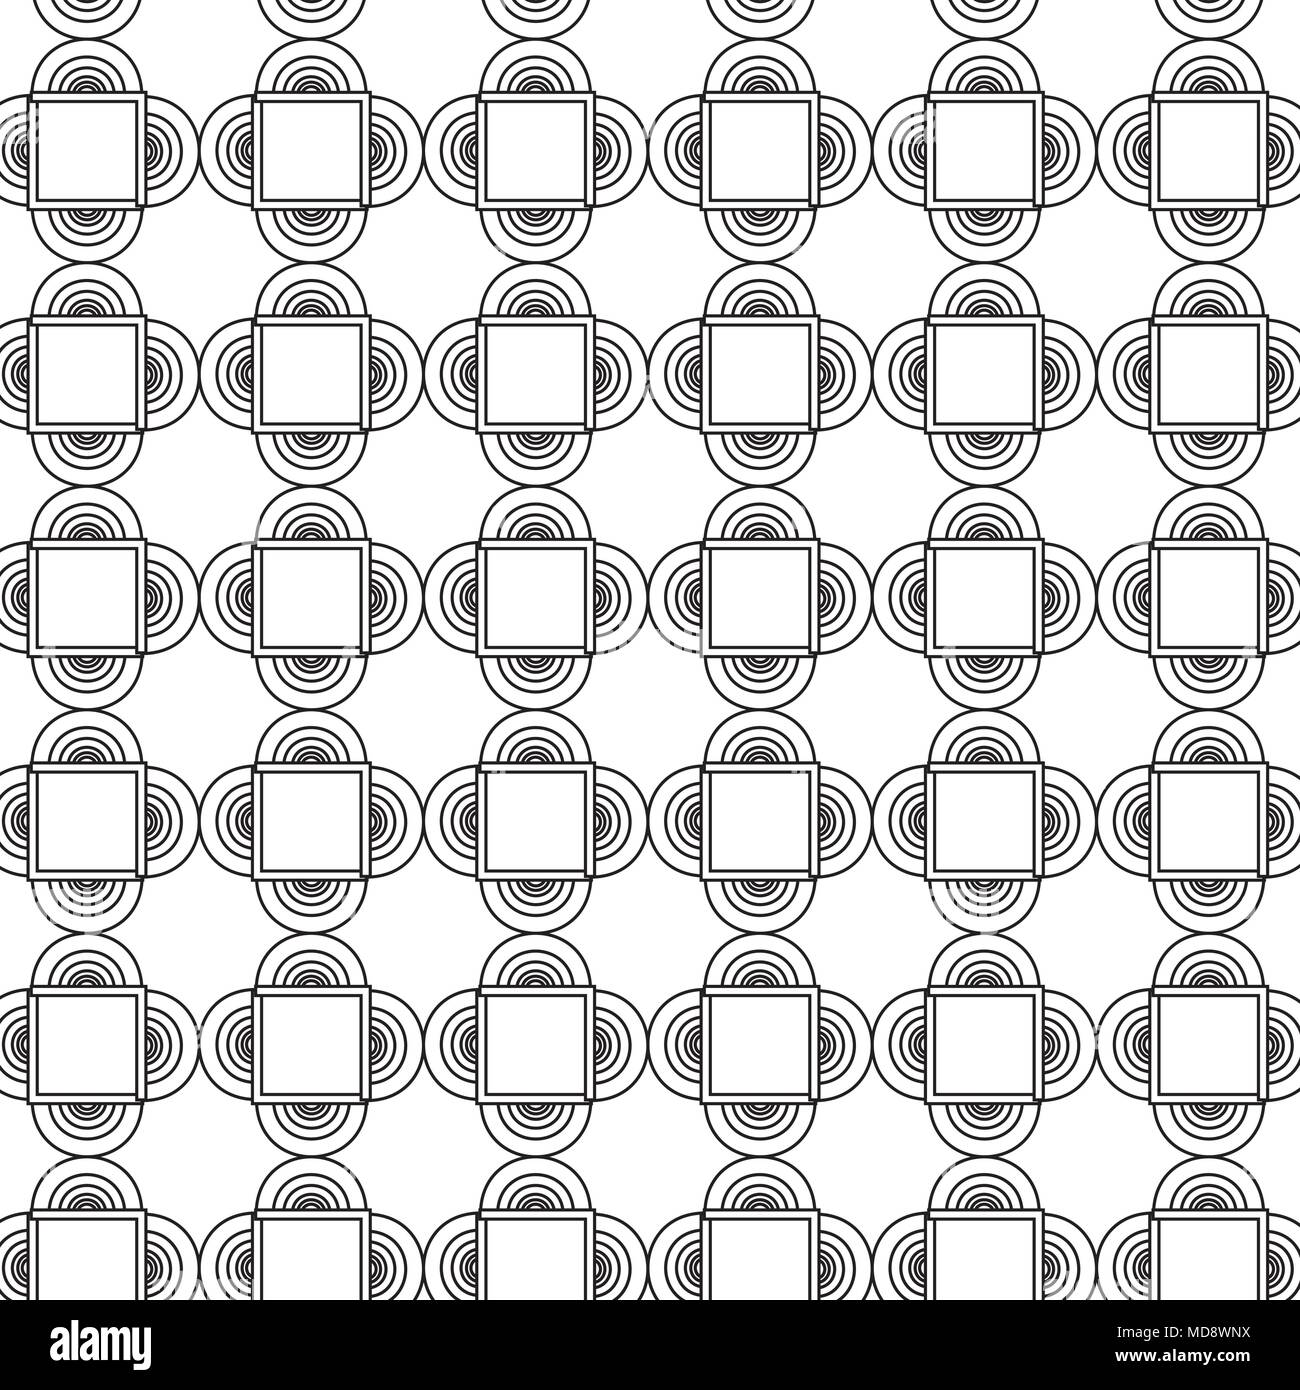 background of geometric shapes, black and white design. vector